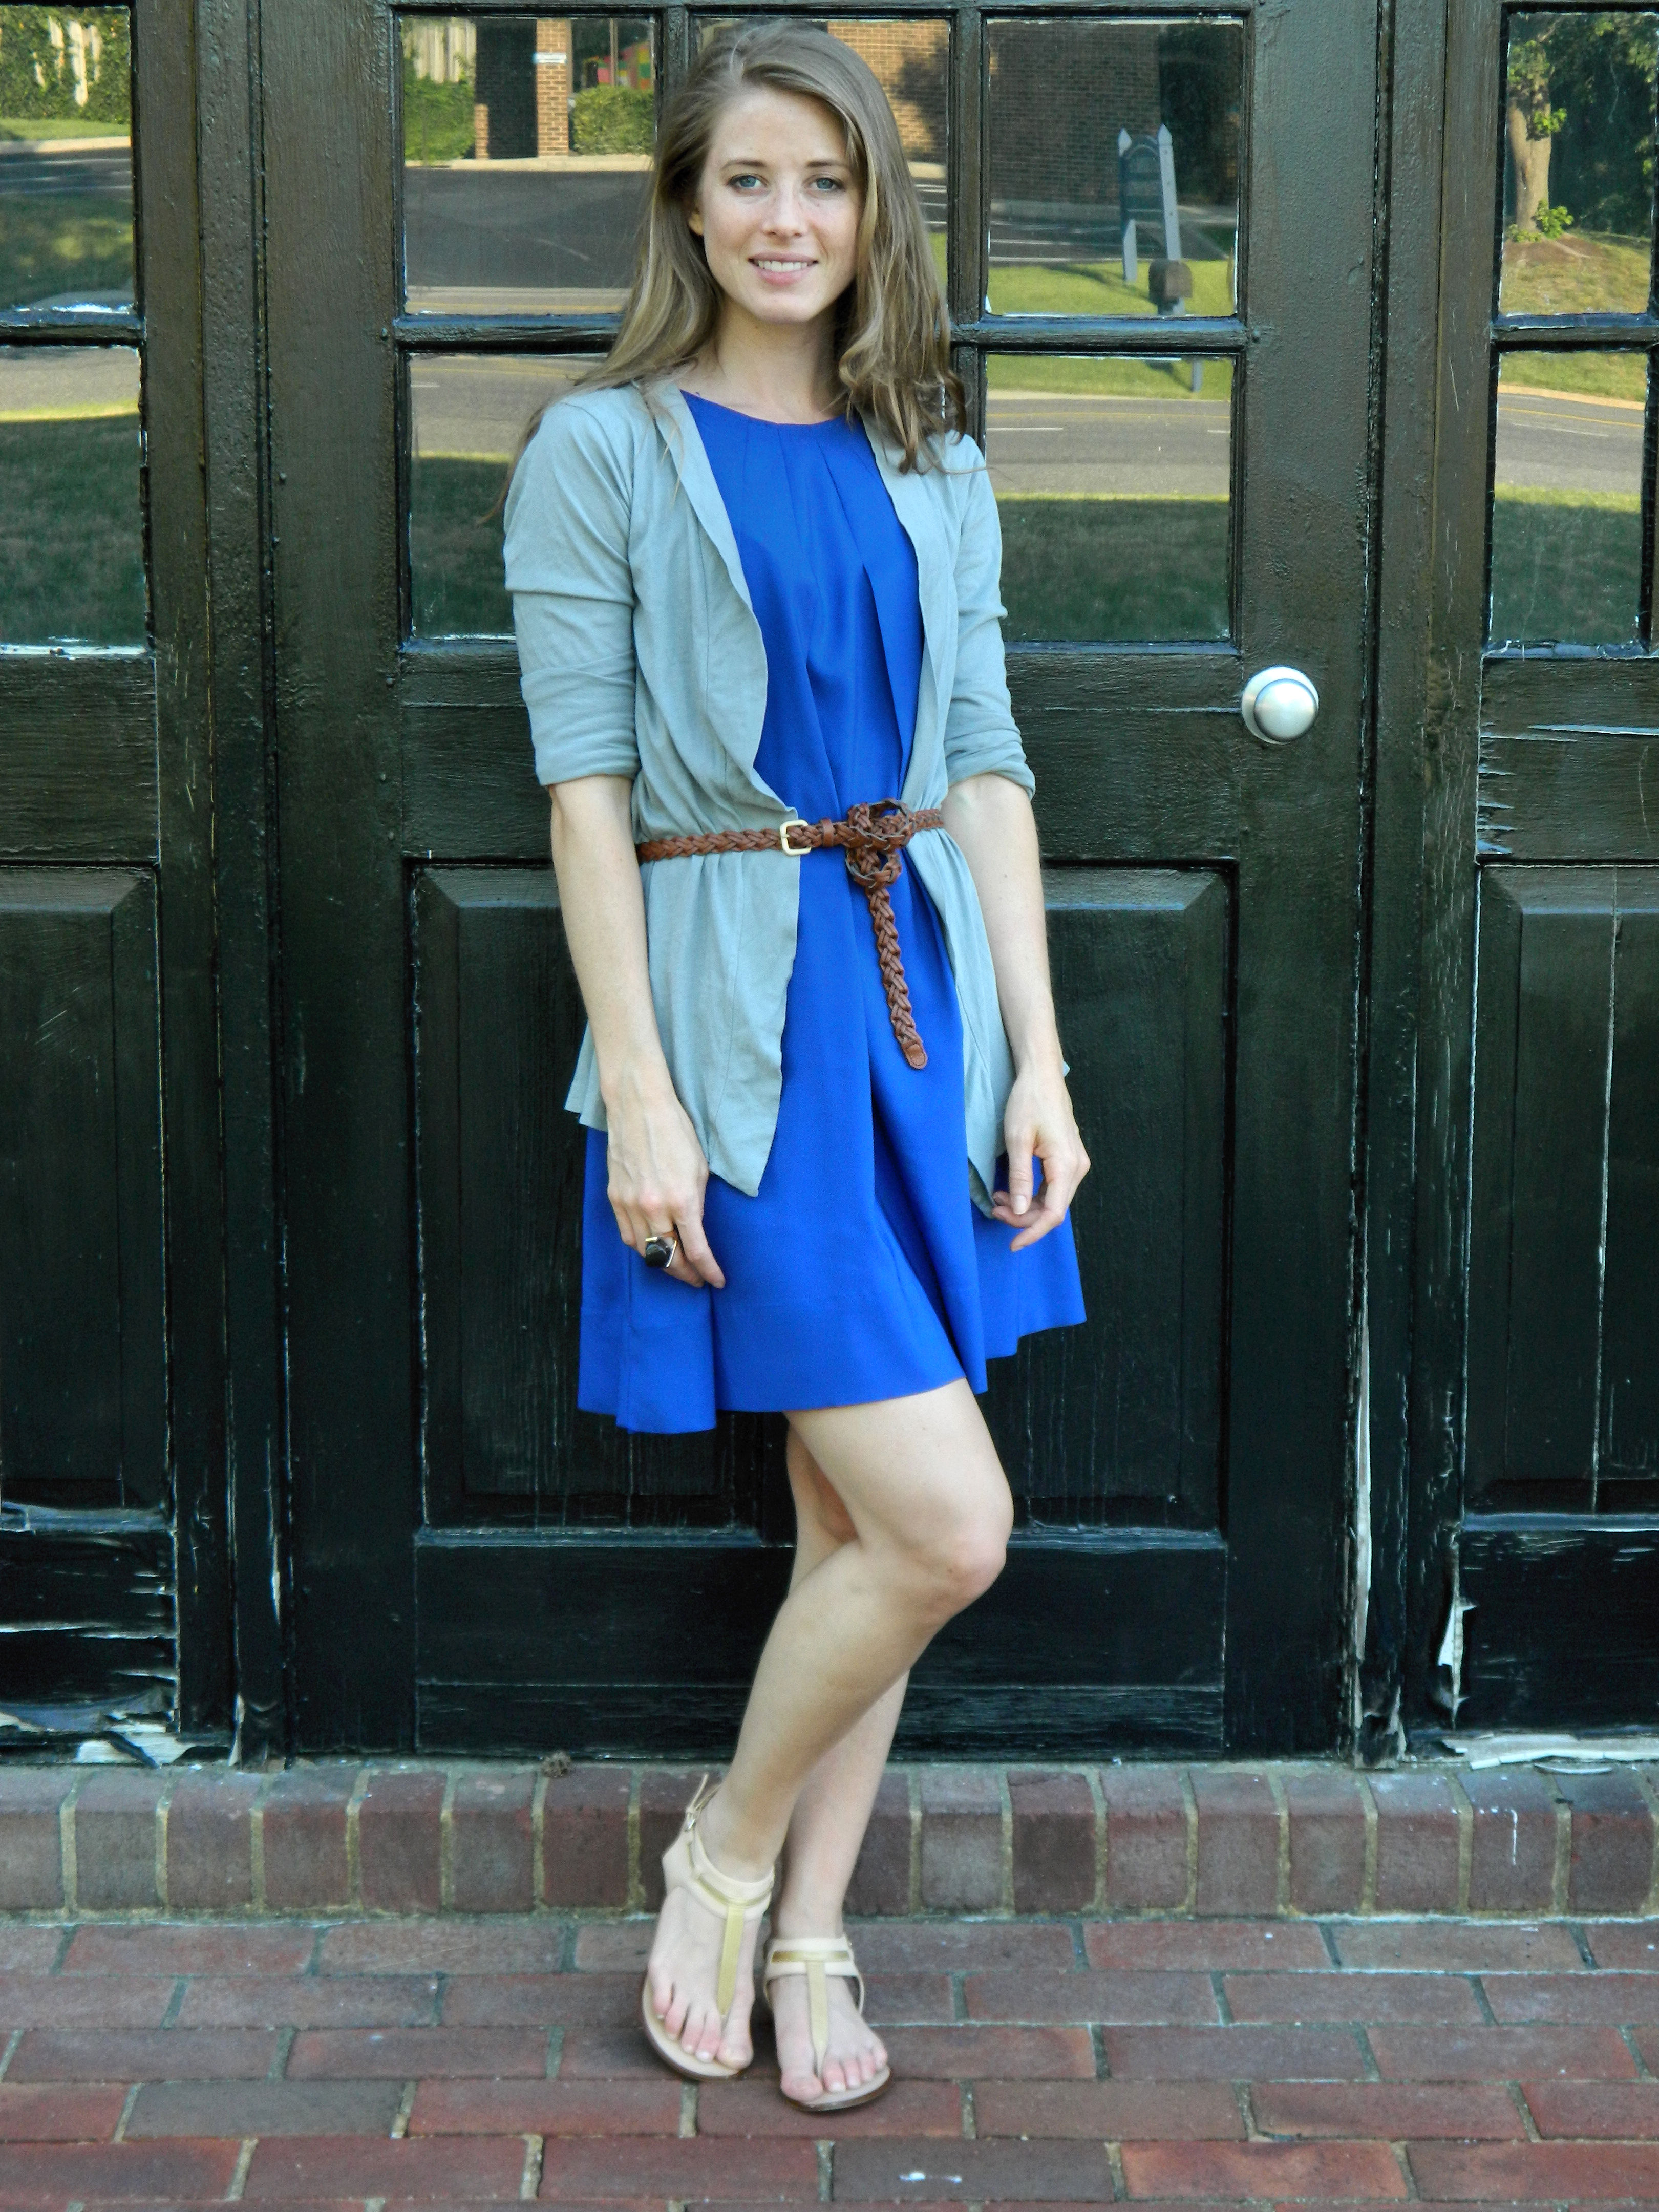 Midweek Chic Tied Up Chic Stripes